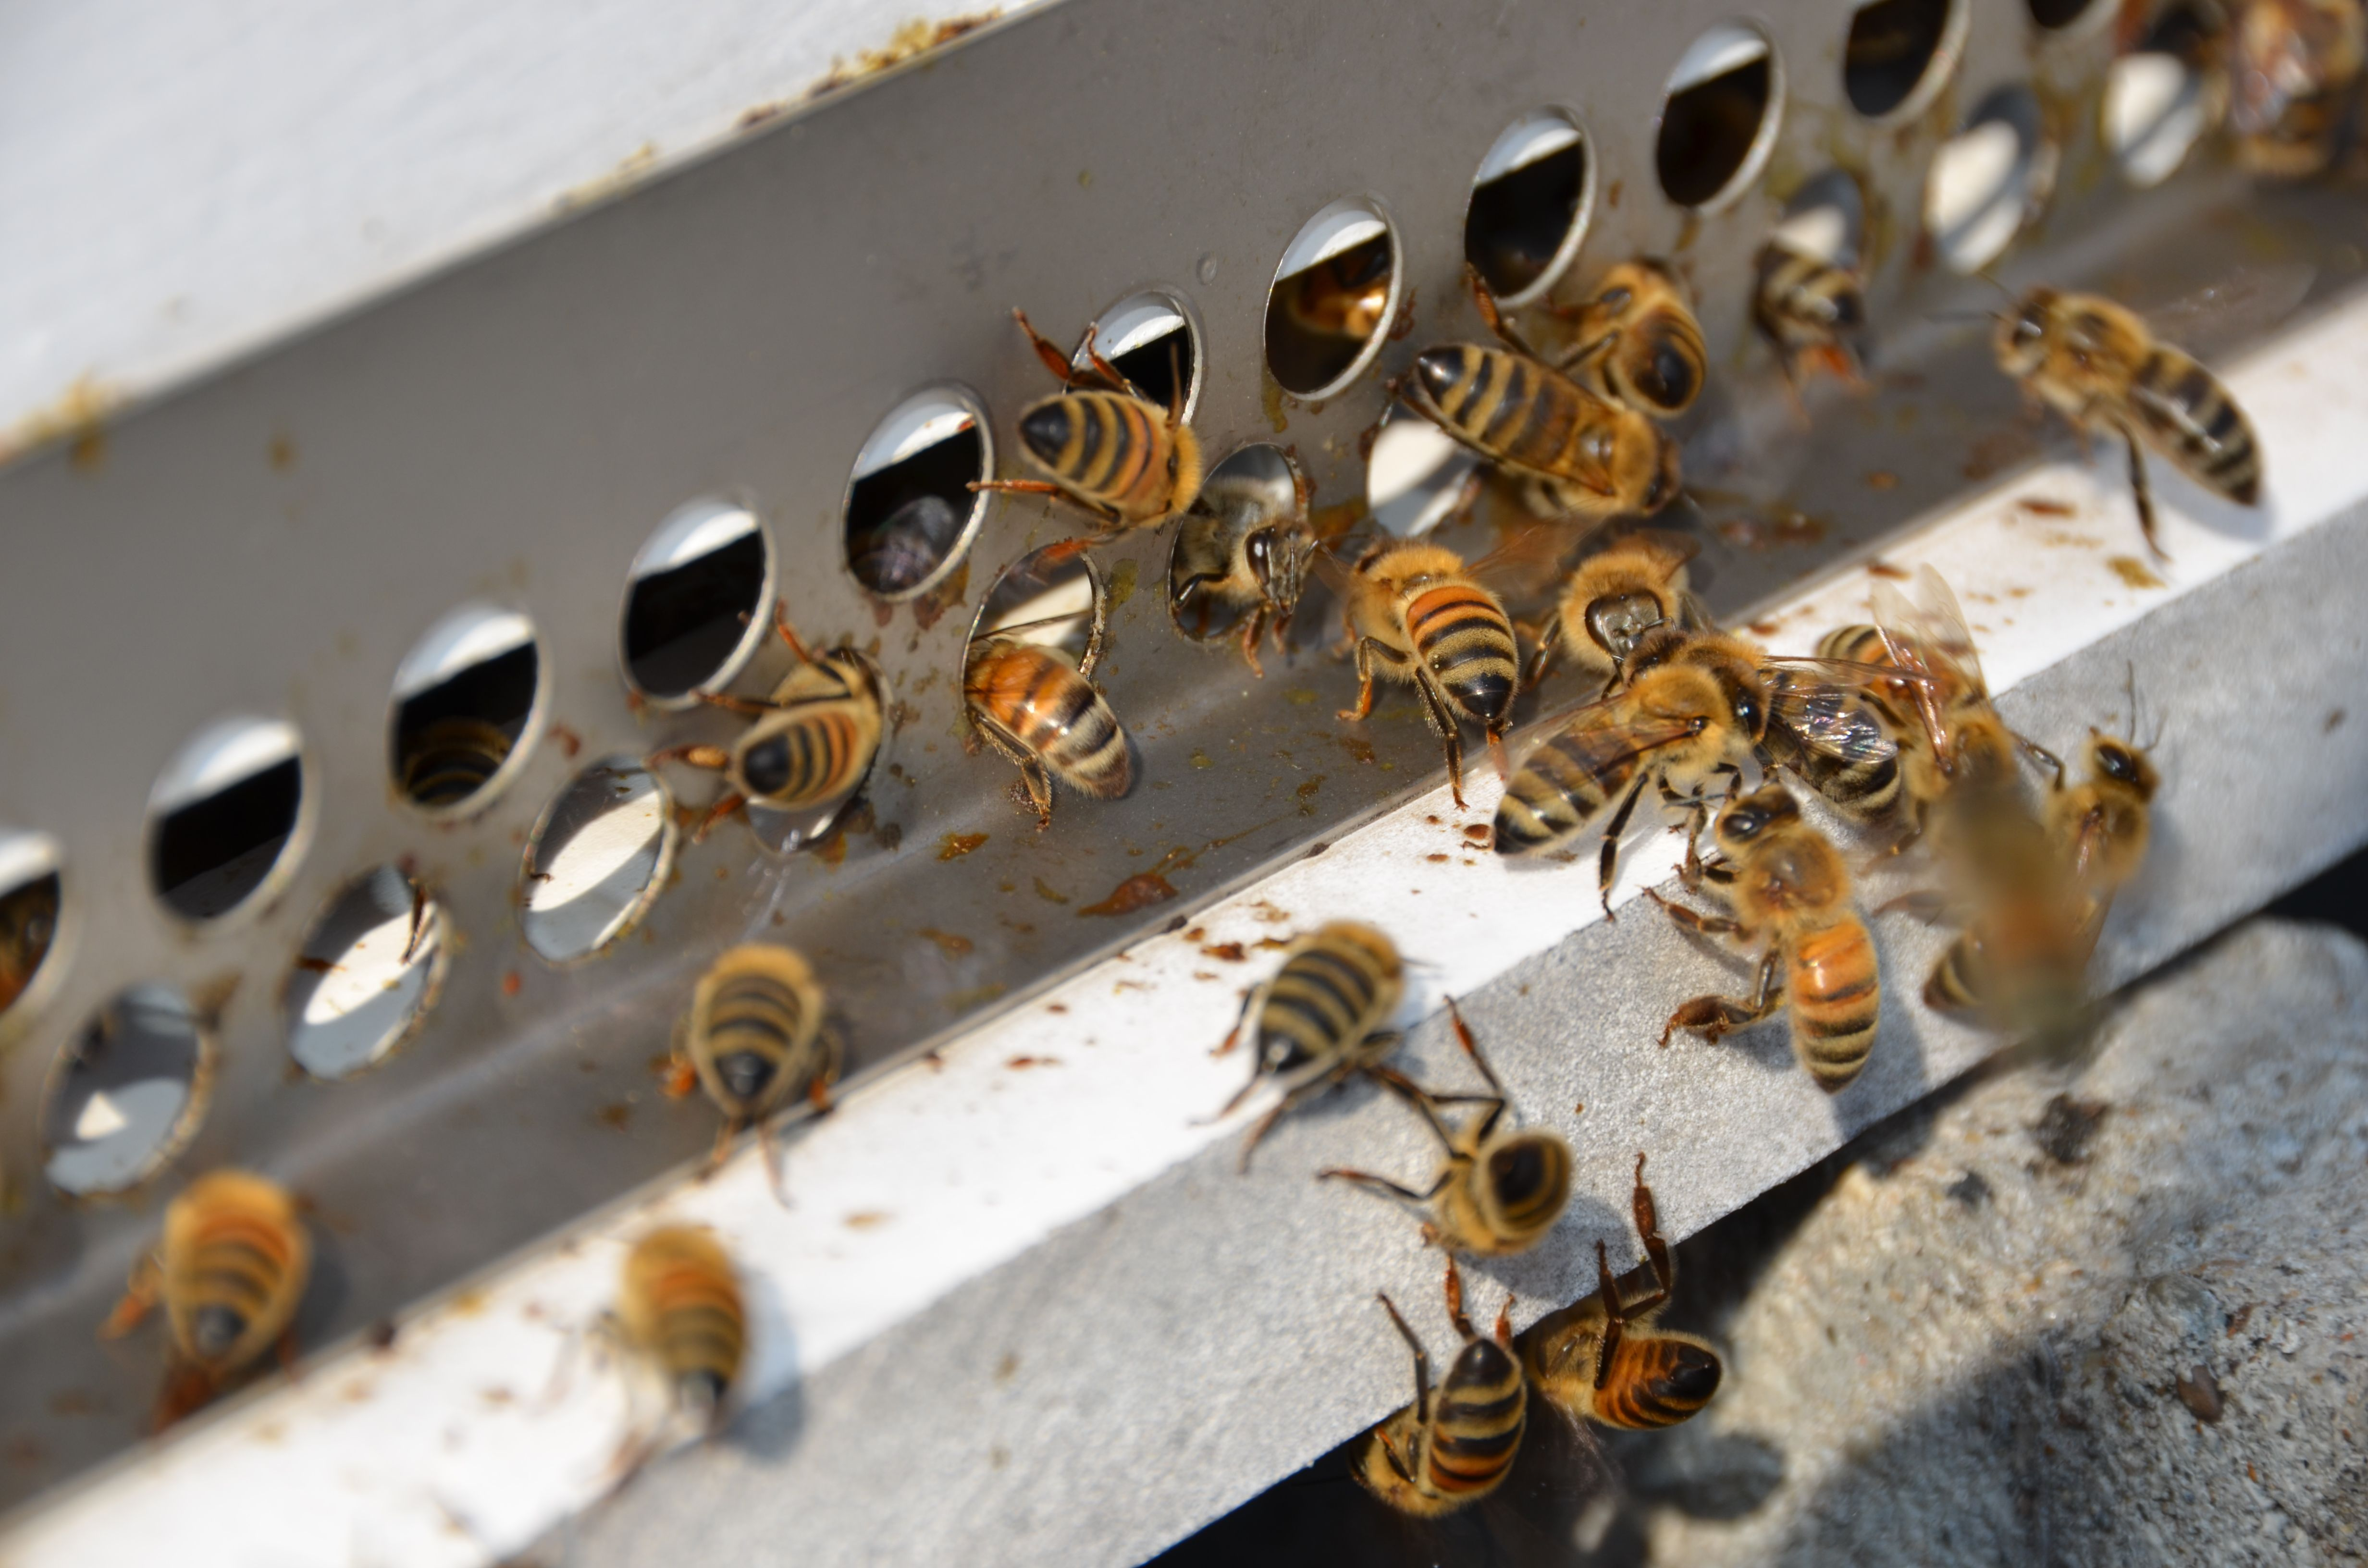 homewood apiary | bees | Pinterest | Beekeeping and Gardens